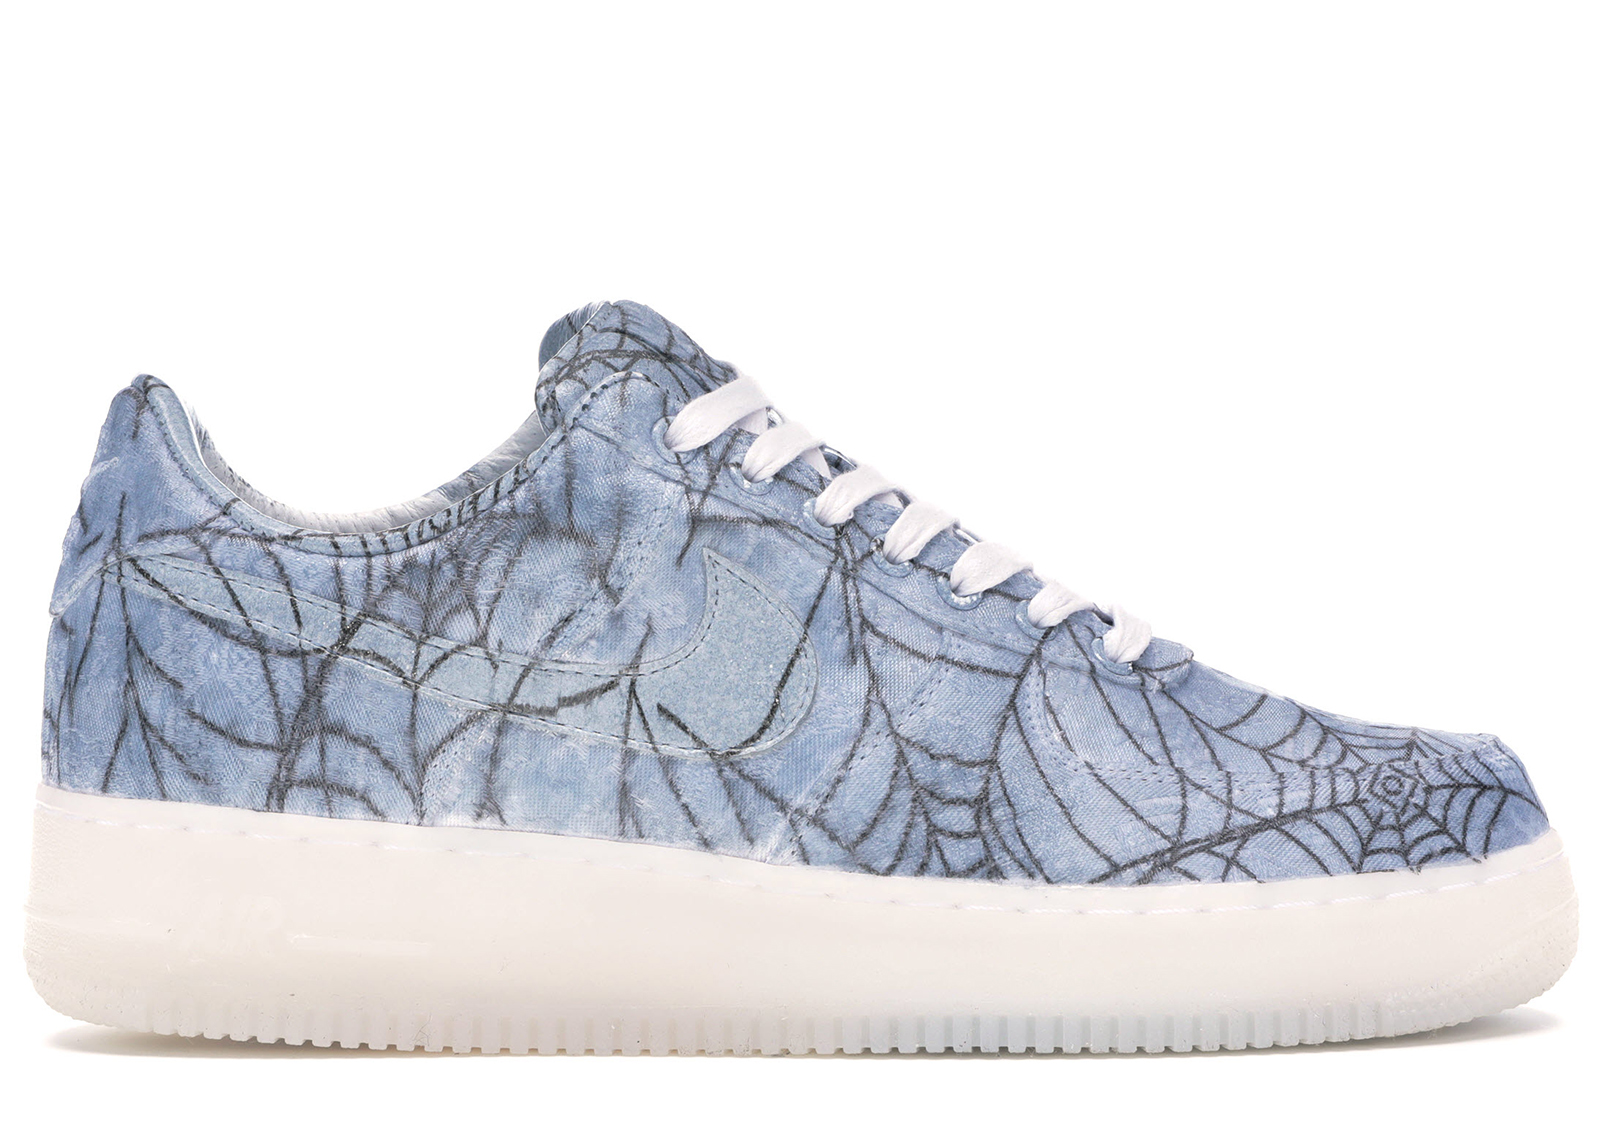 Air Force 1 Low CLOT Spider Web